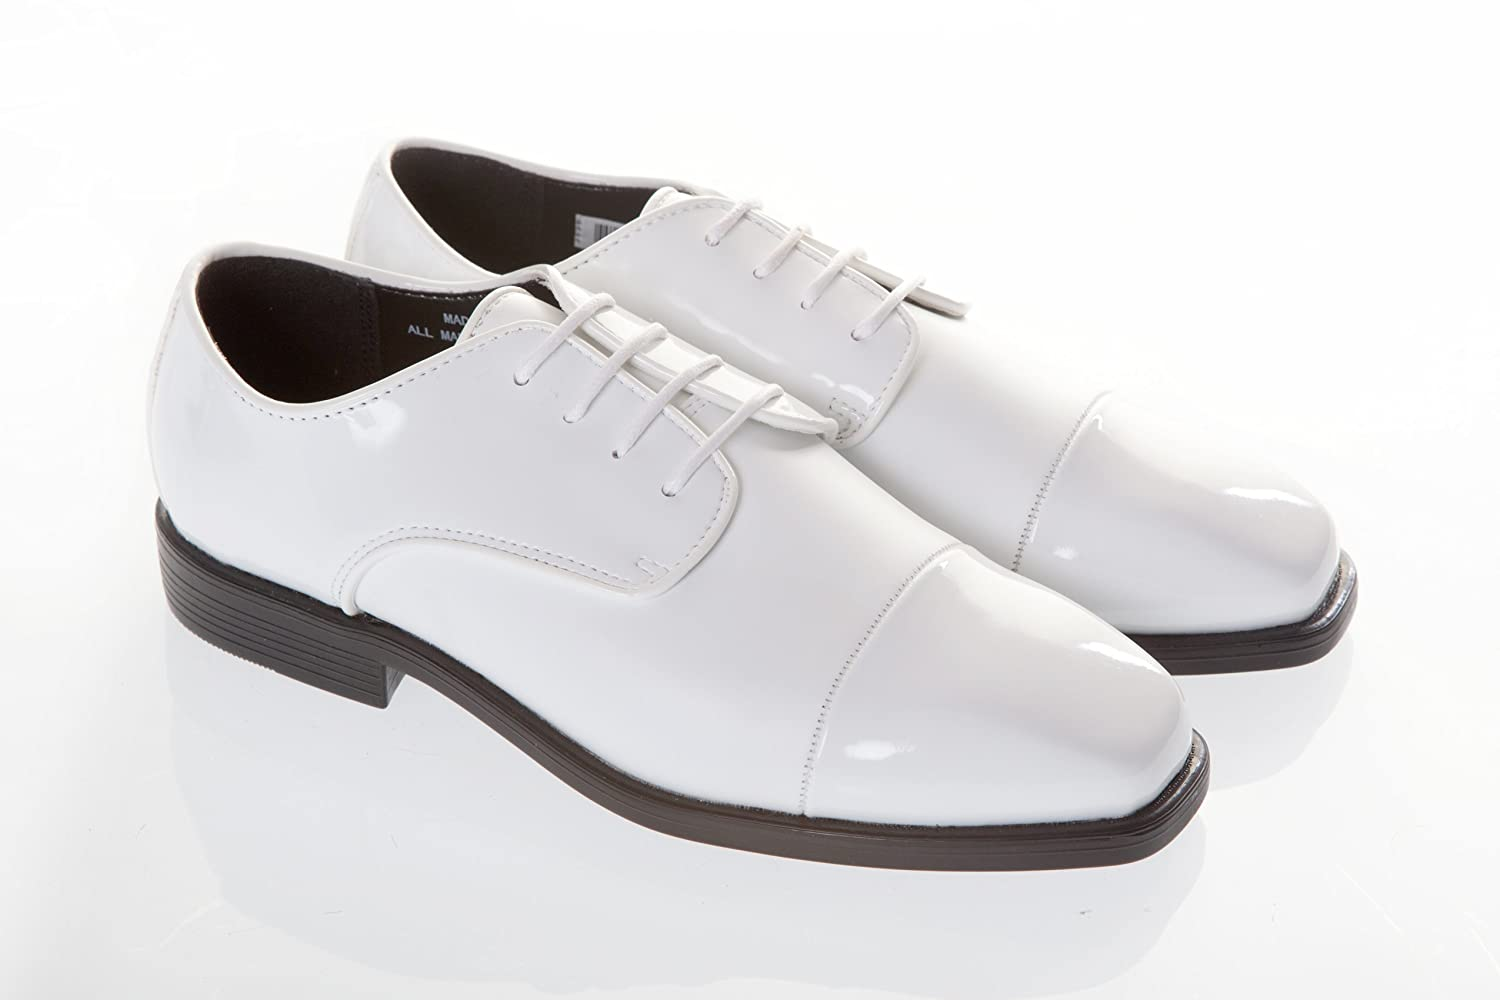 Mens White Patent Wedding Dress Shoes: Amazon.co.uk: Shoes & Bags